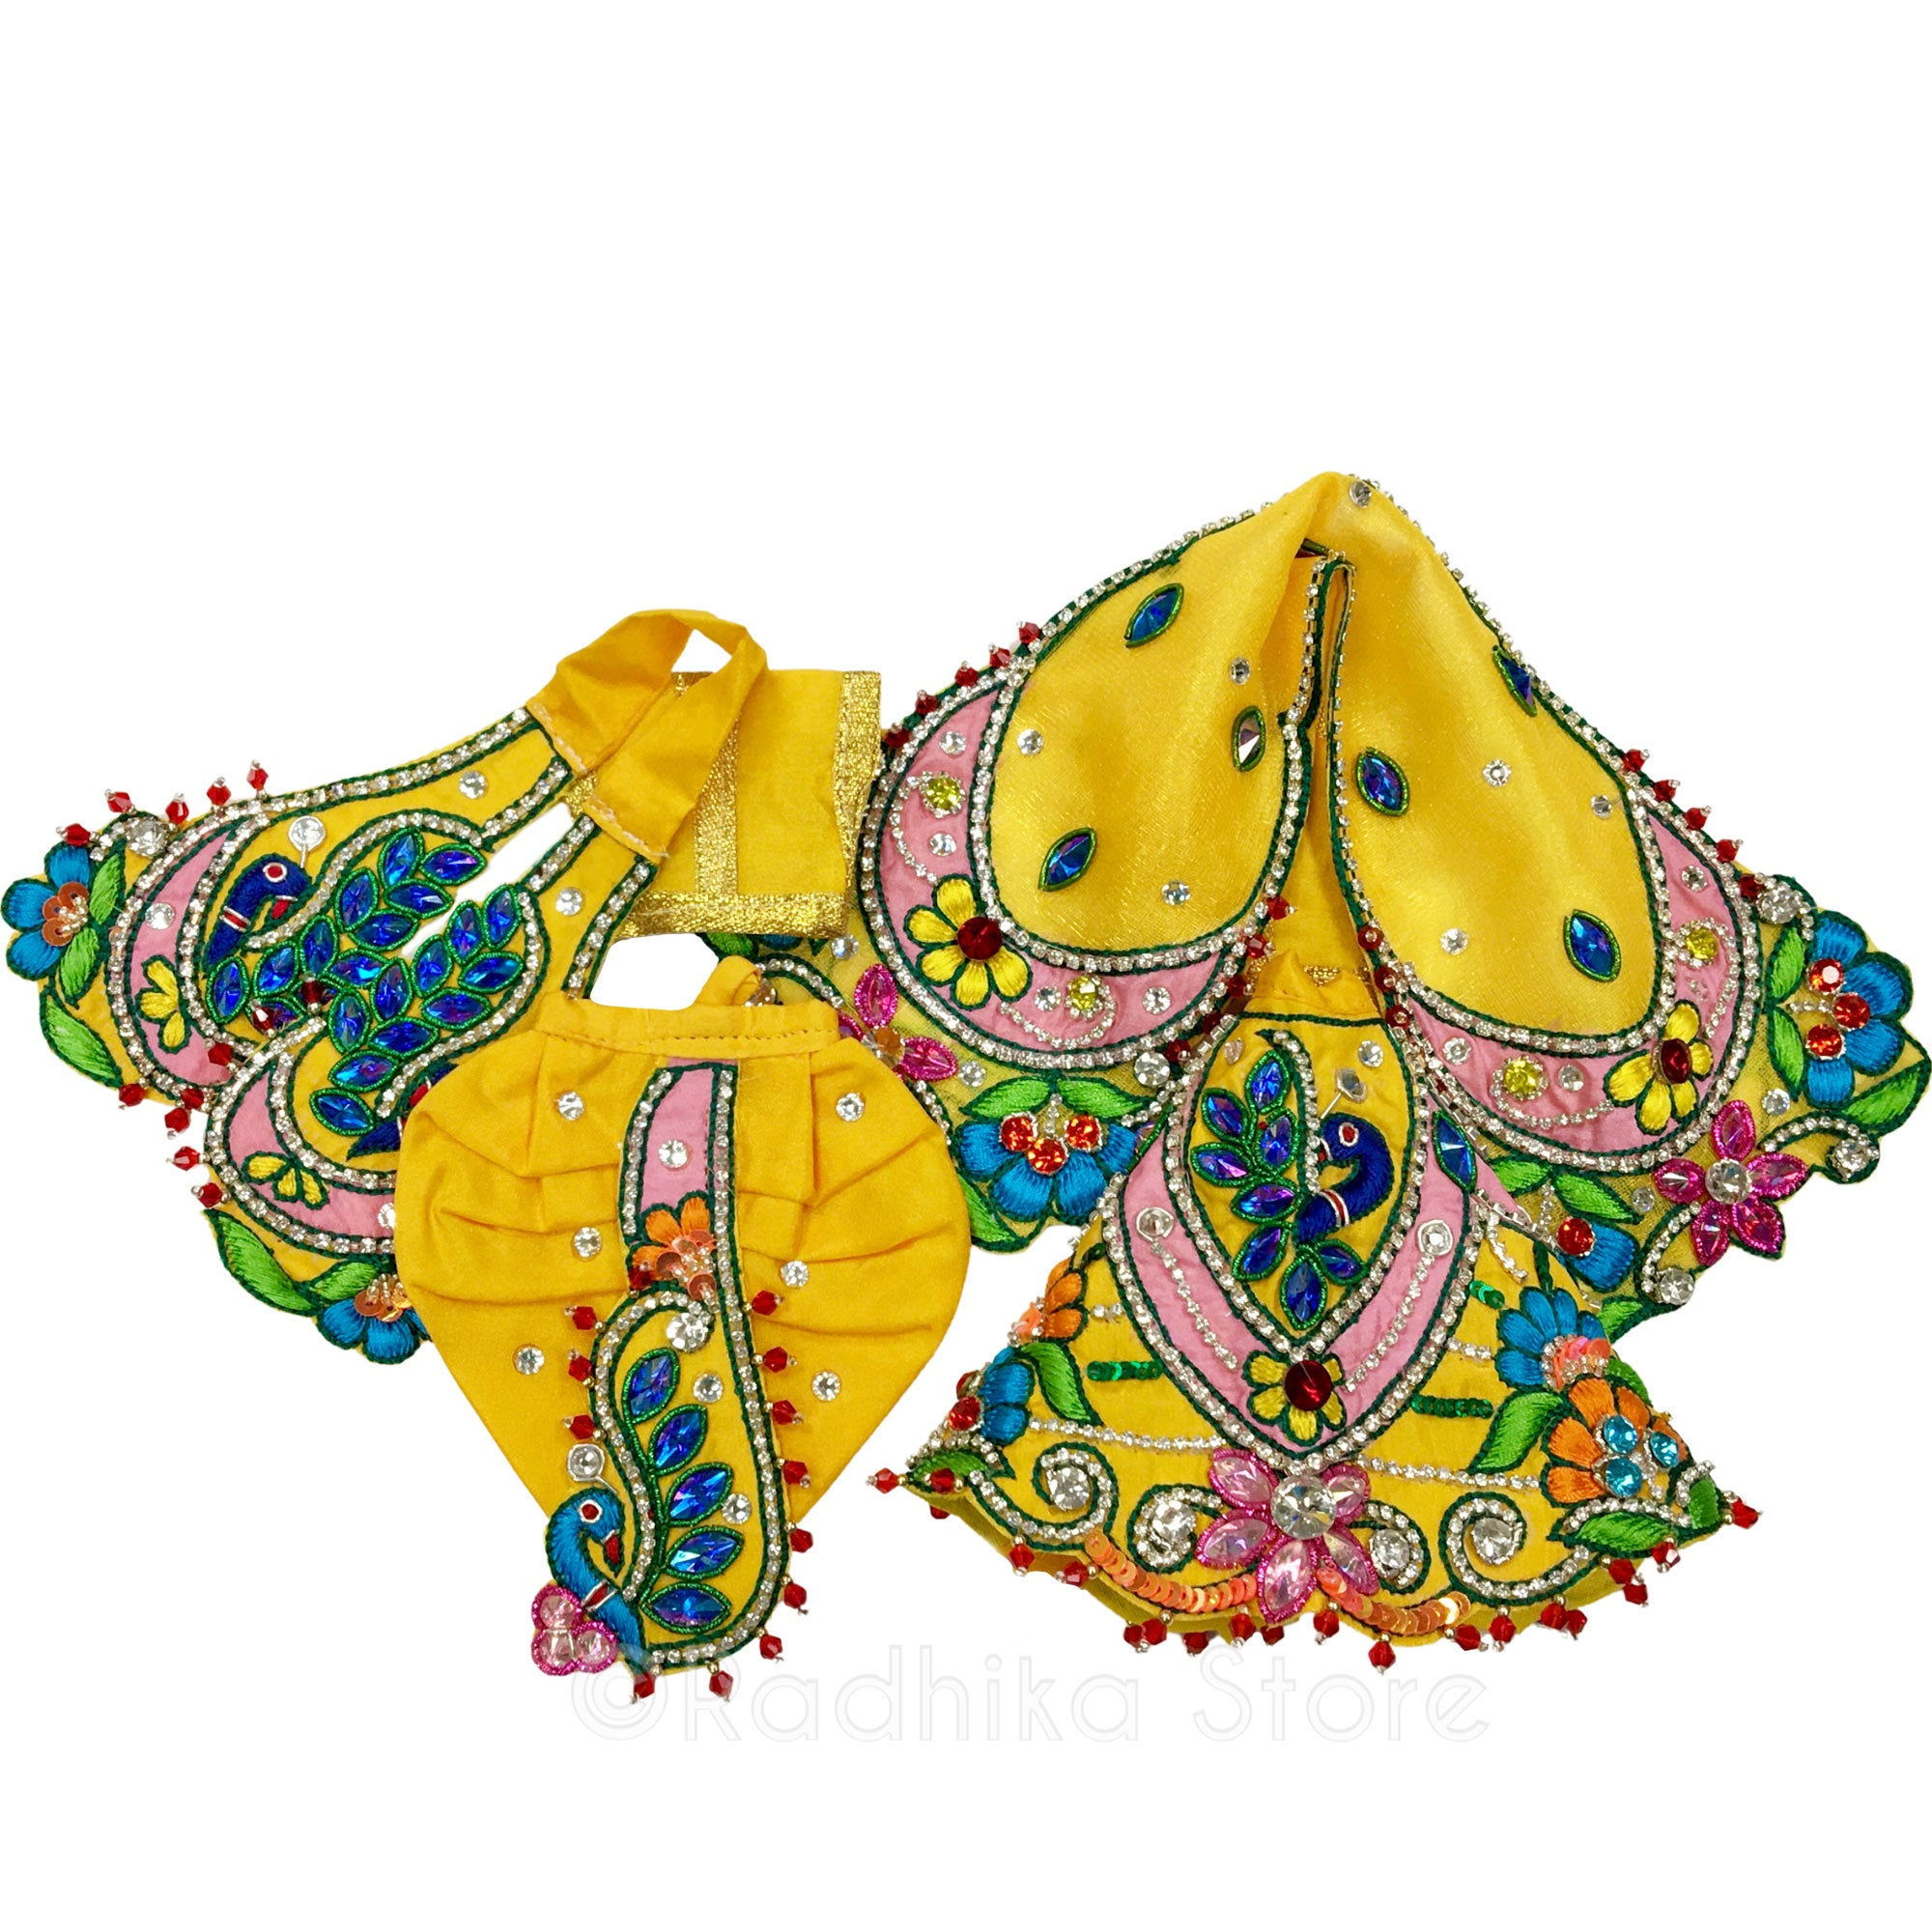 Radha Krishna Loves Peacocks - Yellow and Pink Multicolor - Deity Outfit - (Radha Krishna)